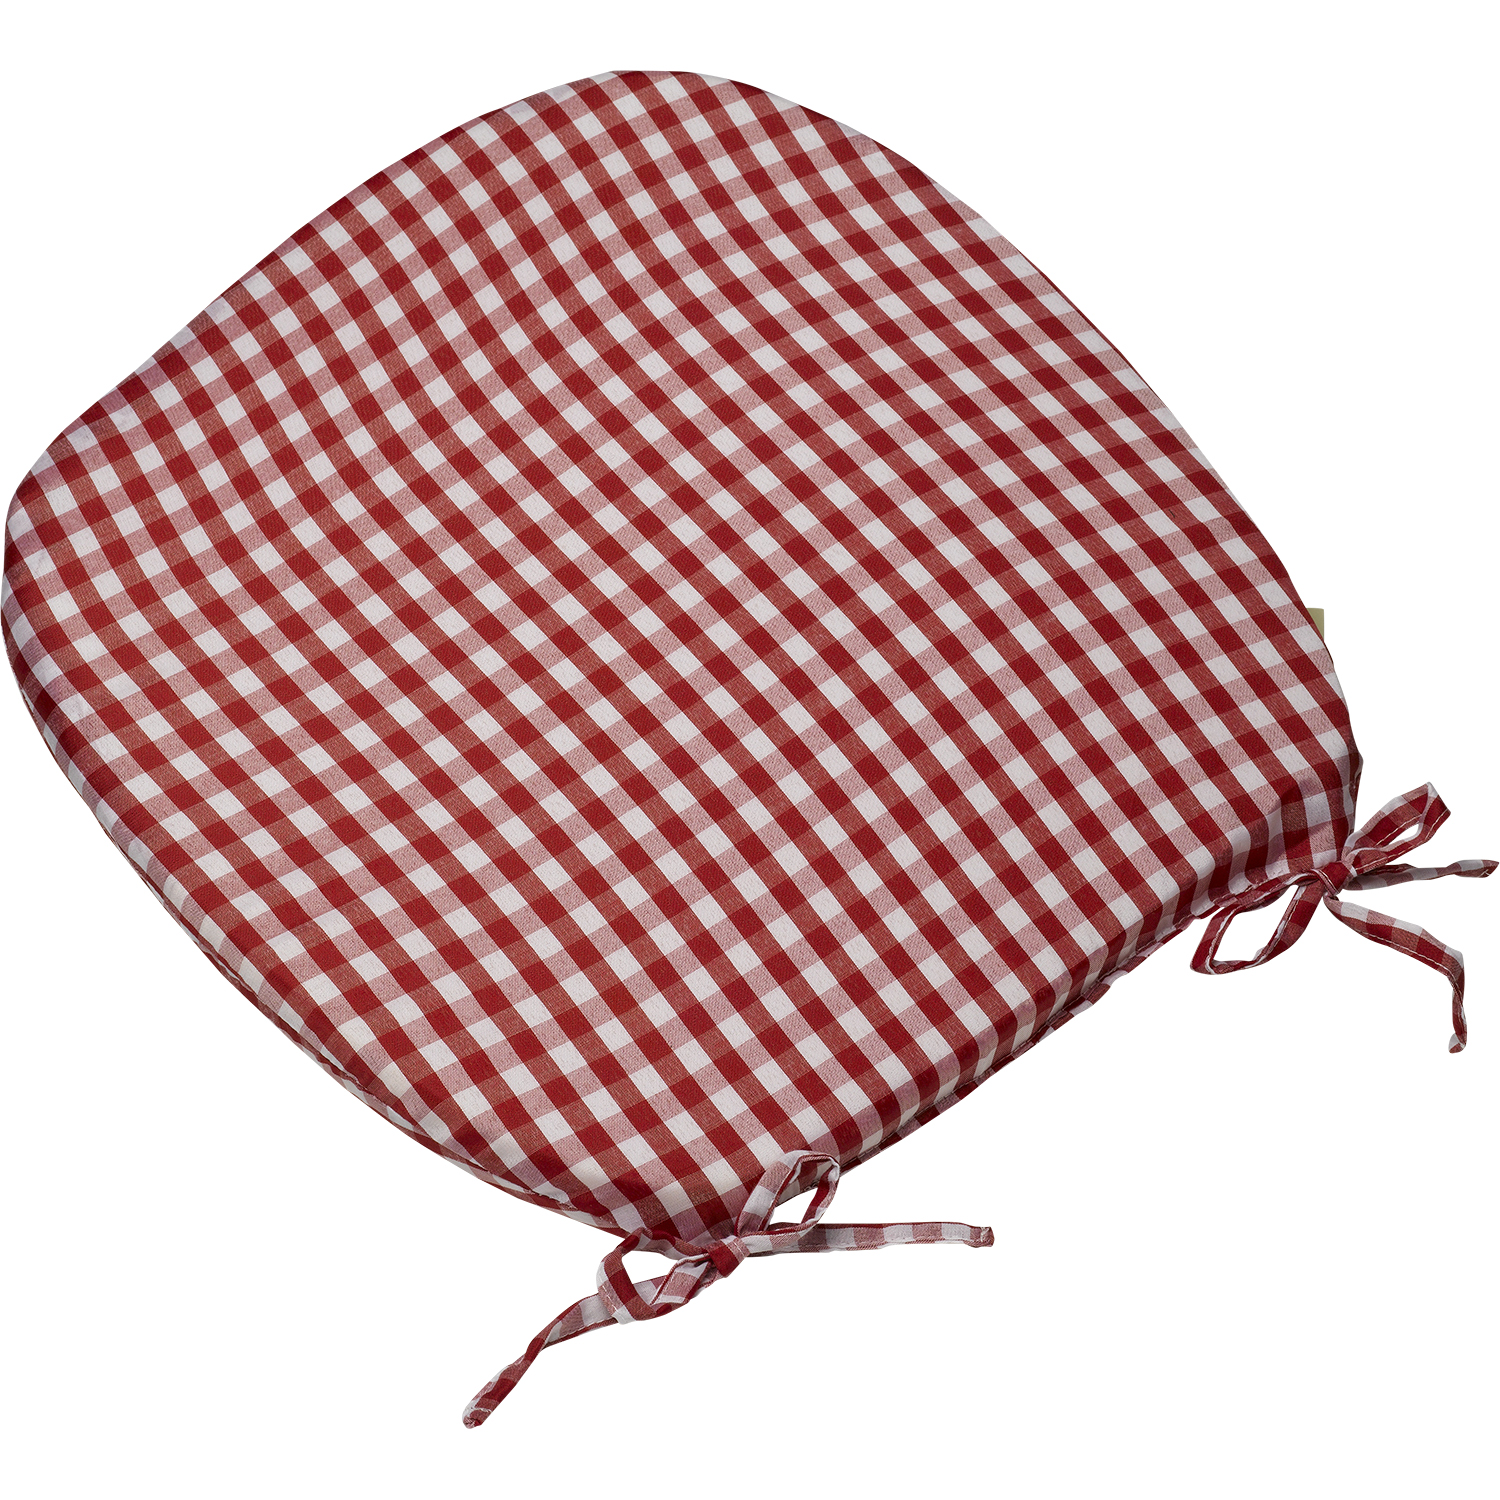 kitchen chair seat cushions with ties cushions for kitchen chairs Gingham Check Tie On Seat Pad 16 X 16 Kitchen Outdoor Dining Chair Cushion Ebay